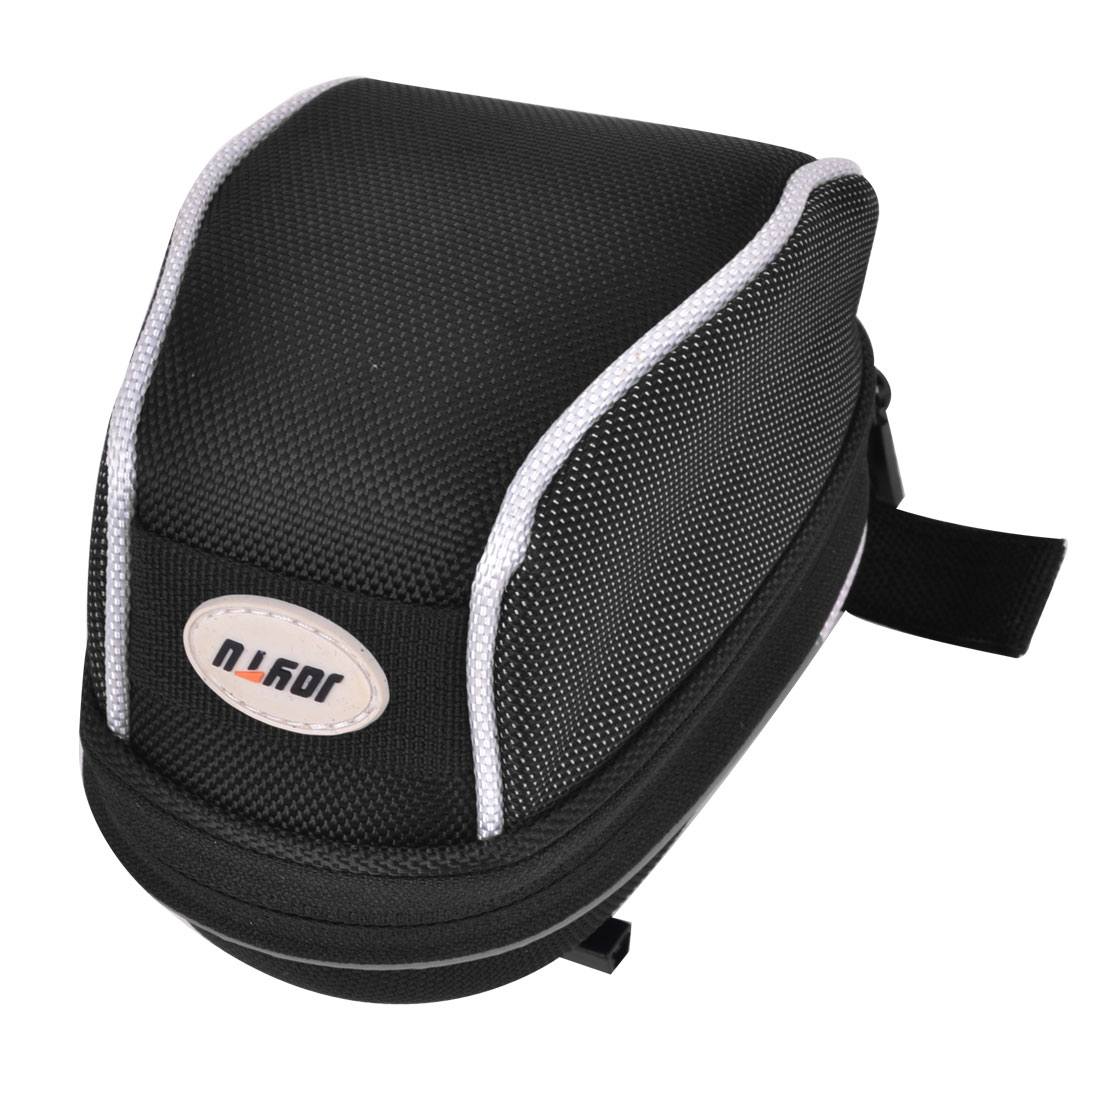 Road Bicycle Cycling Riding Saddle Seat Rear Tail Bag Case Pouch Black White